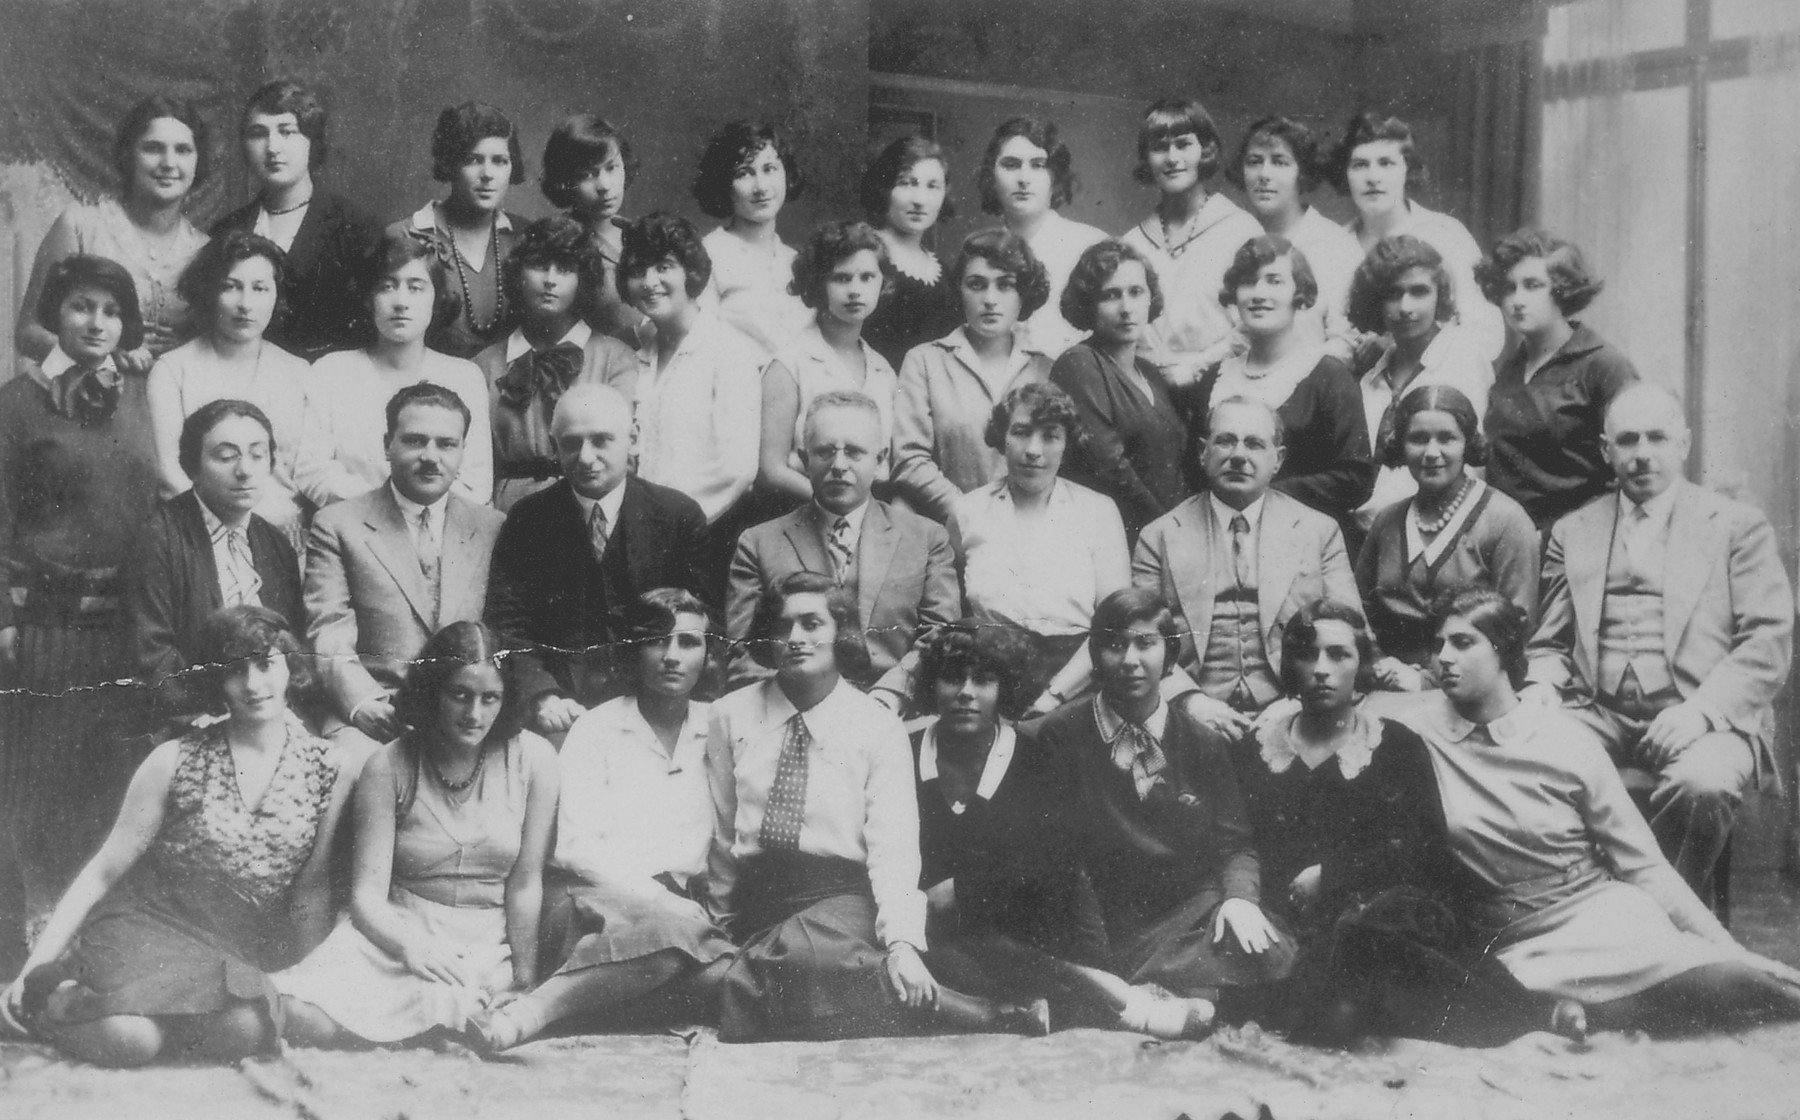 Teachers and students at Zofja Kalecka Gimazjum, a private Jewish girls high school in Warsaw.  The group pictured here is probably the graduating class of 1933.   The teachers seated in the second row are (left to right) Augusta Kalecka (Polish language and literature), A. Brandes (mathematics), Tadeusz Klimowicz (principal), Roza Baumgarten (German language and literature), Herman Kalecki (school owner), Stenia Majerowicz (physical education) and Michal Kalecki (school owner).